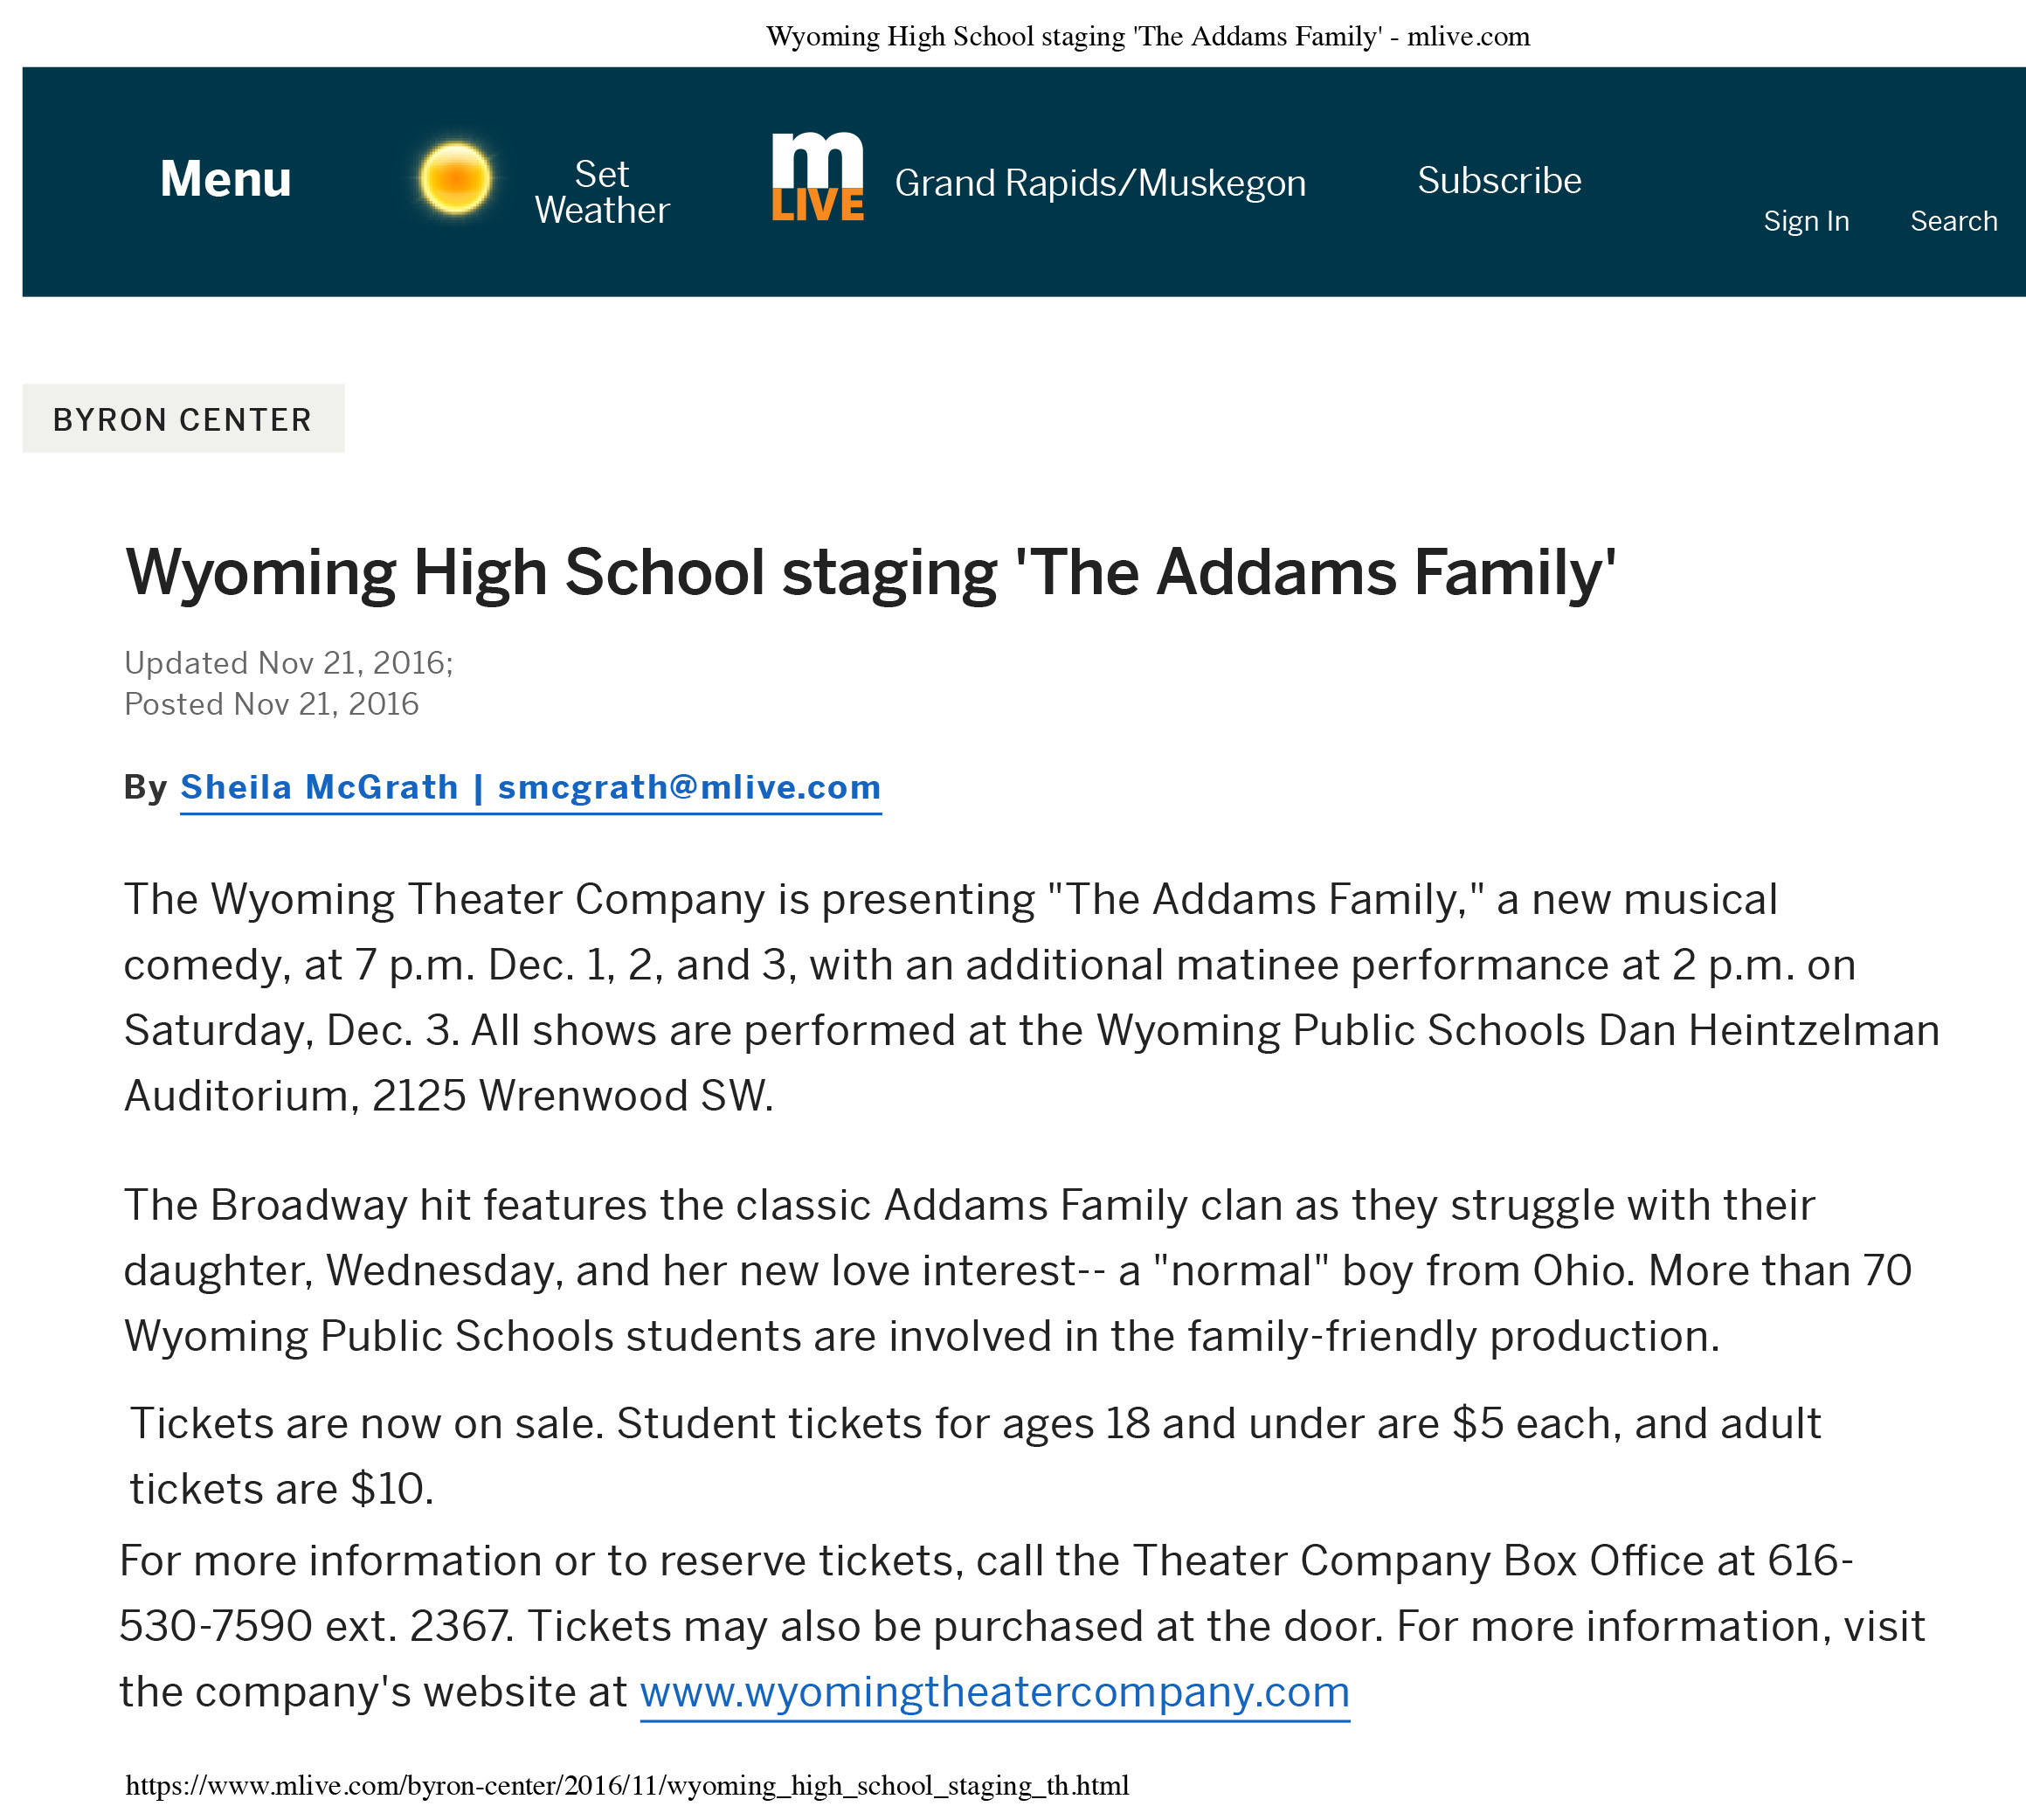 addams family mlive article